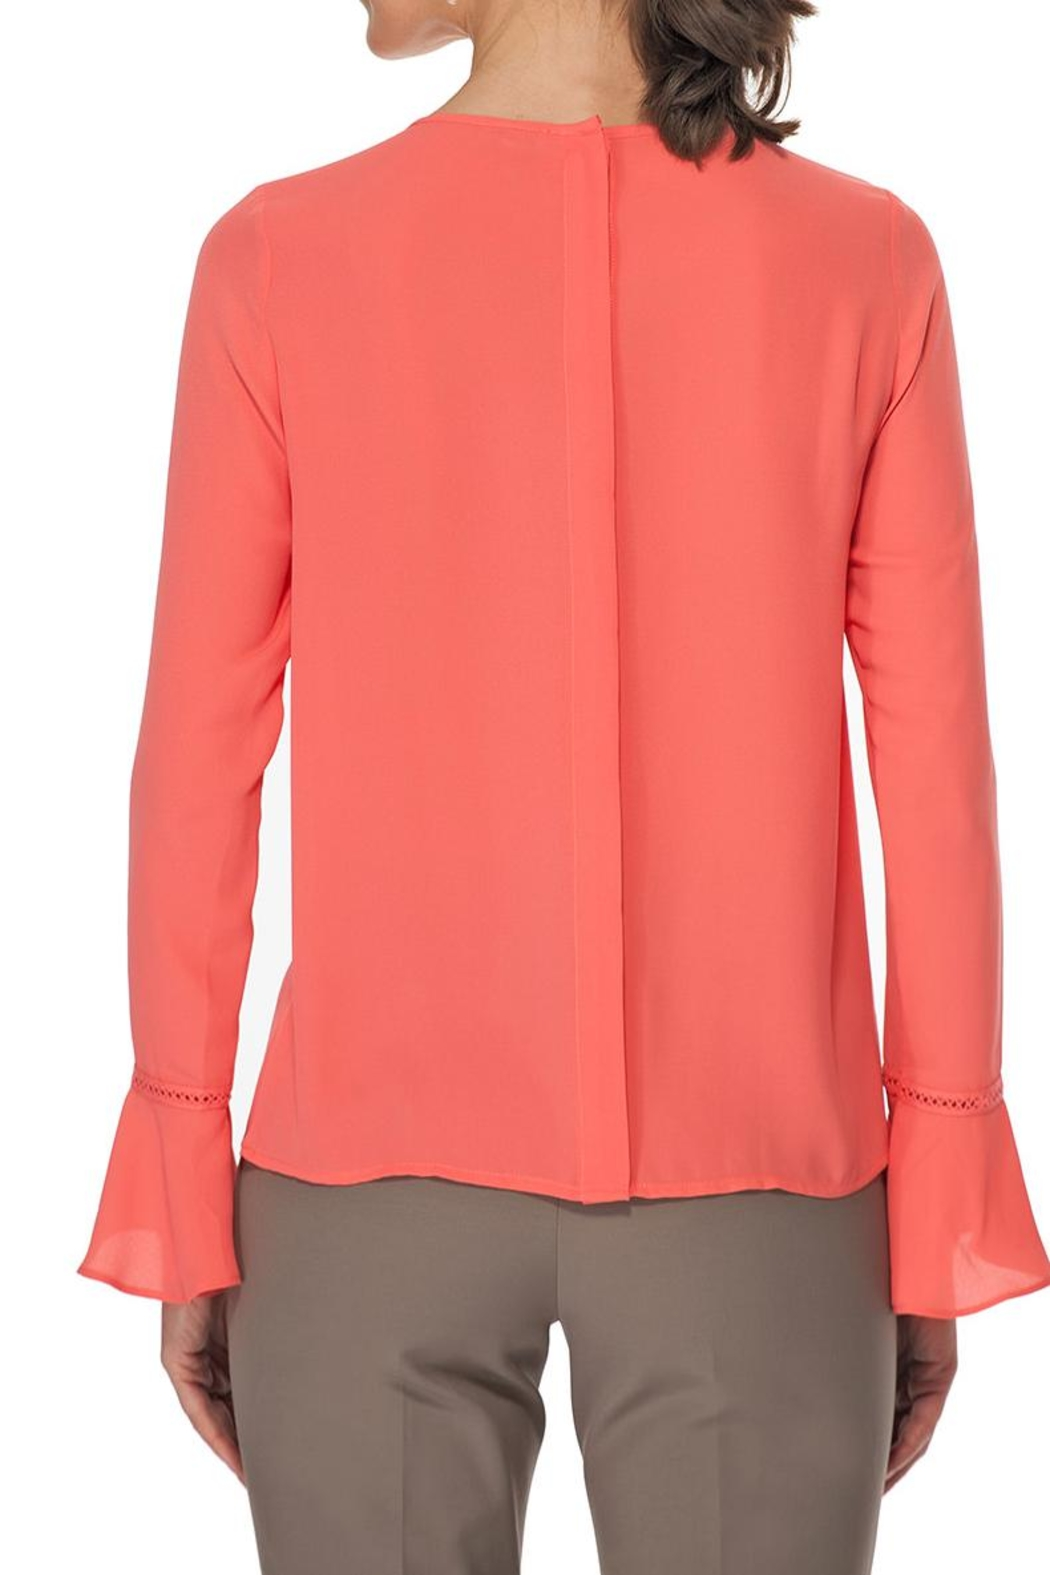 TRISTAN Coral Embroidery Blouse - Front Full Image